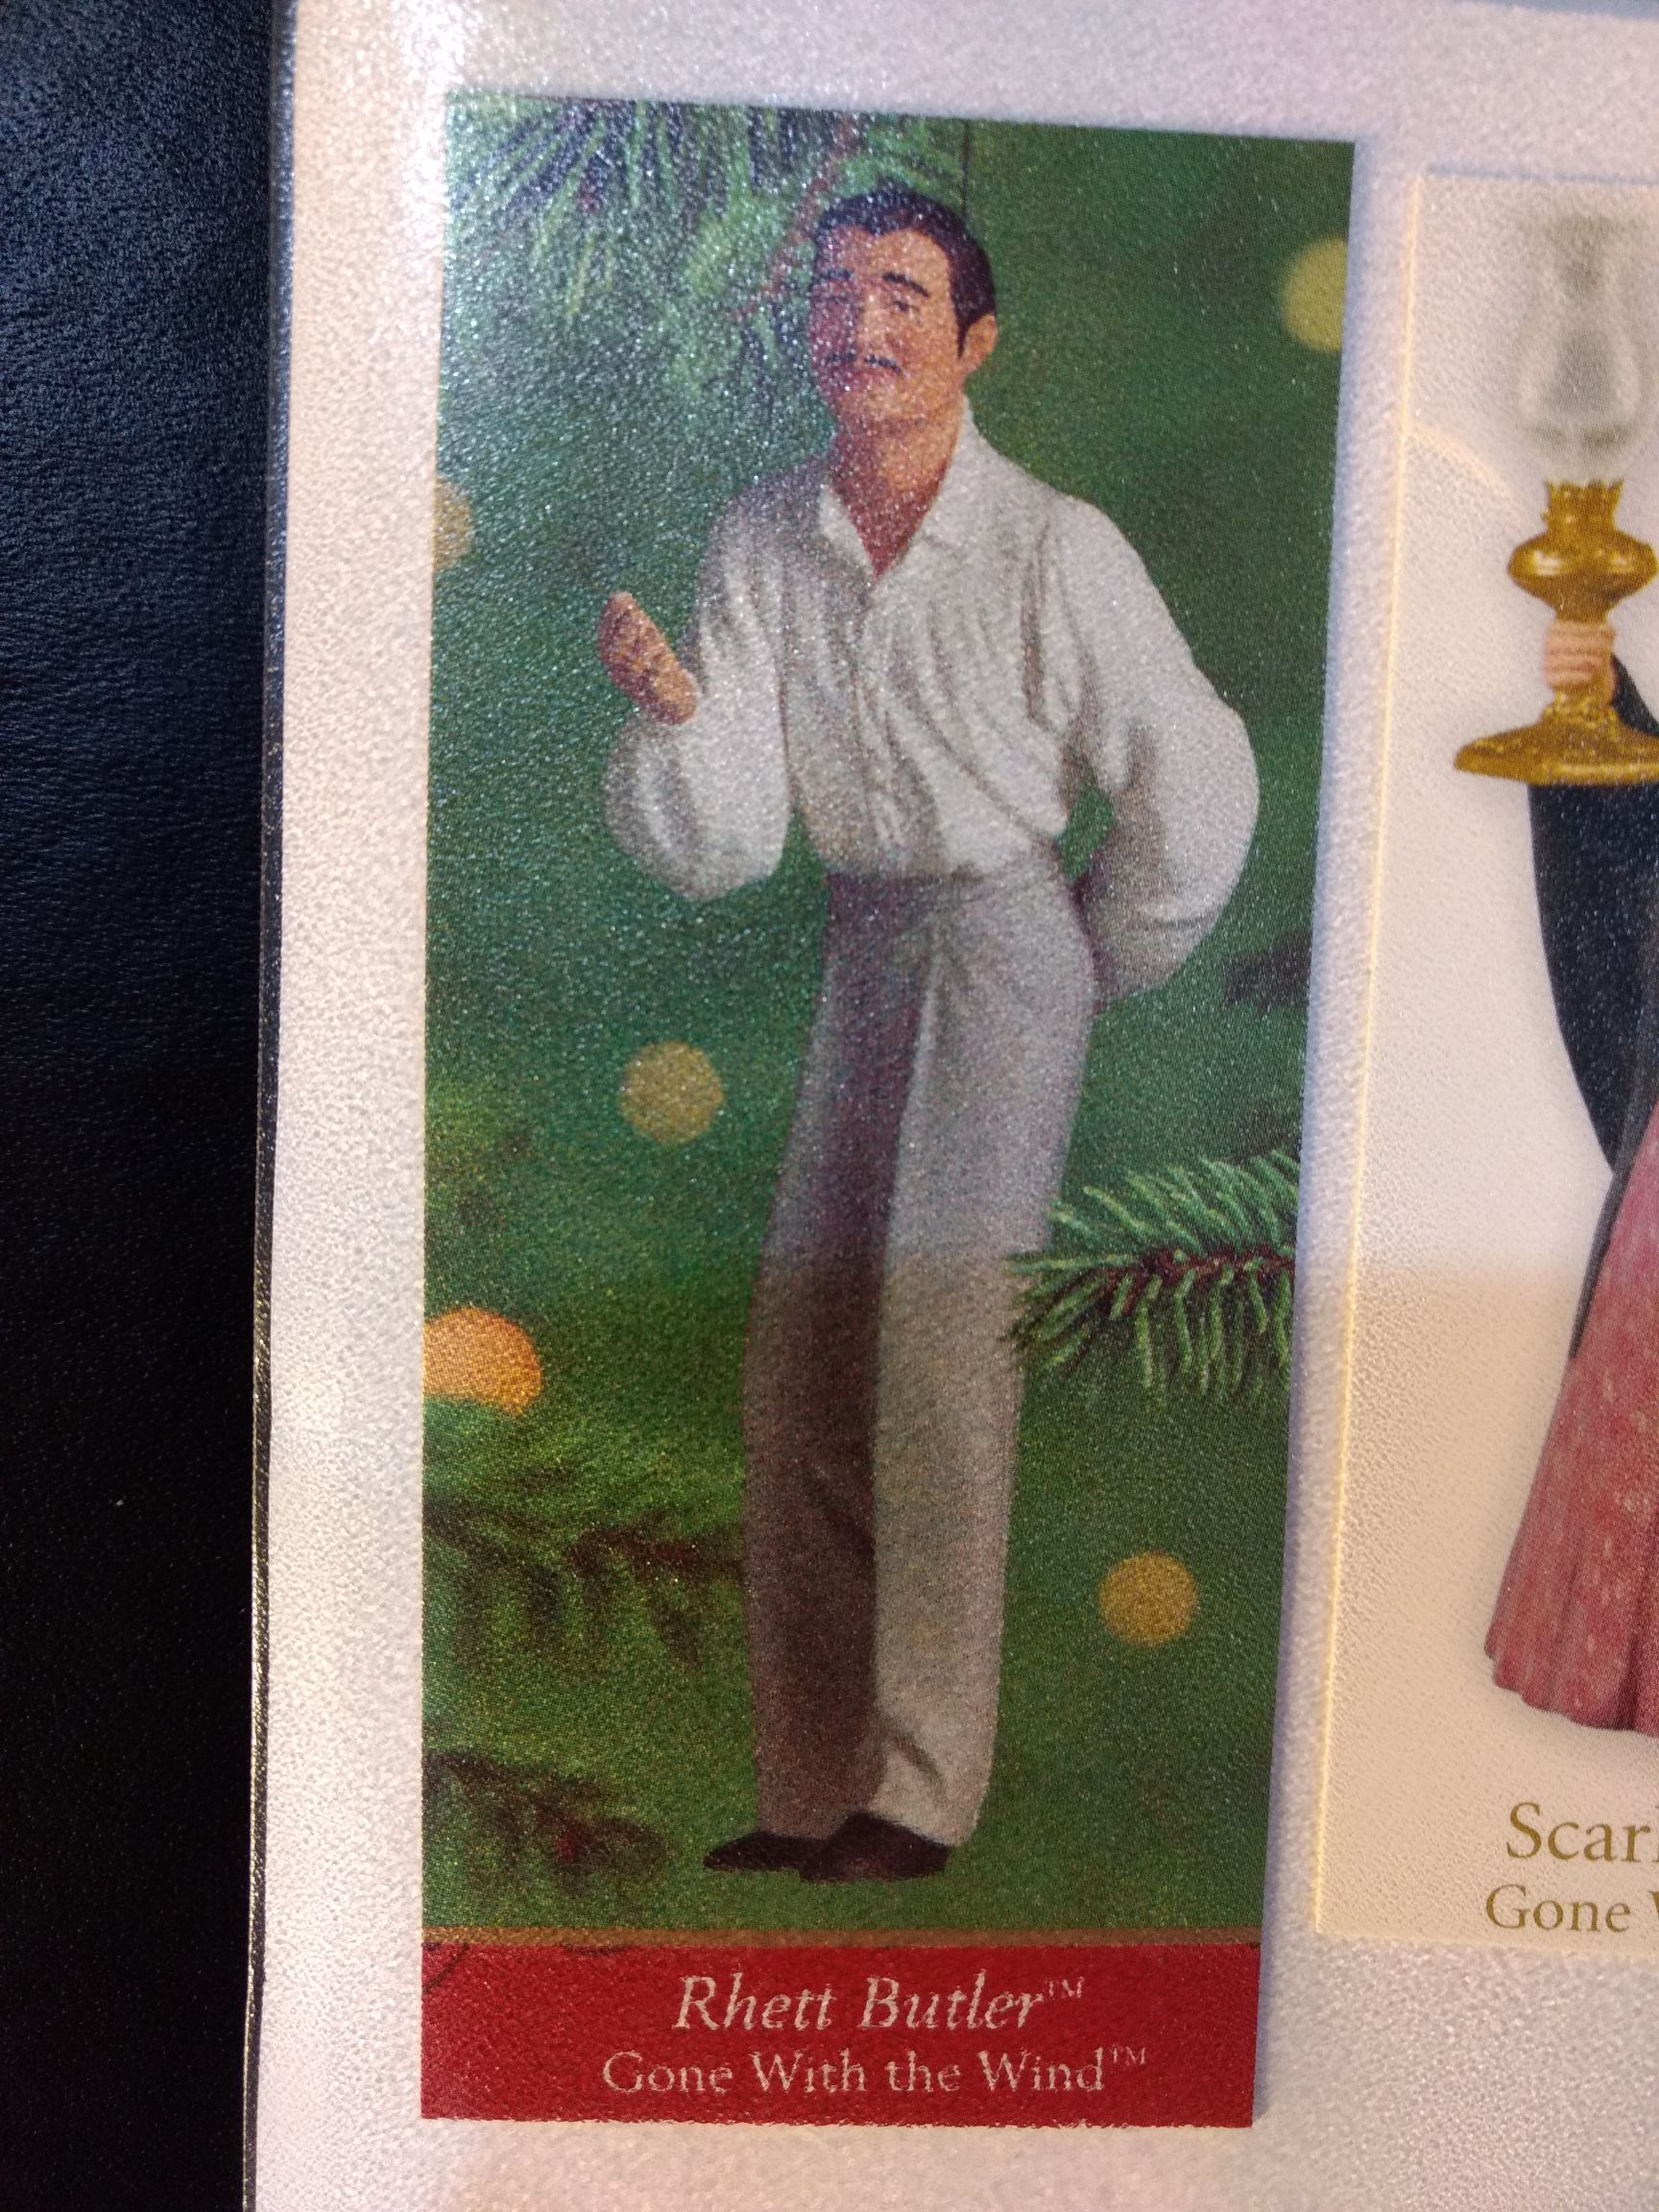 Gone With The Wind - Rhett Butler Ornament - Hallmark front image (front cover)